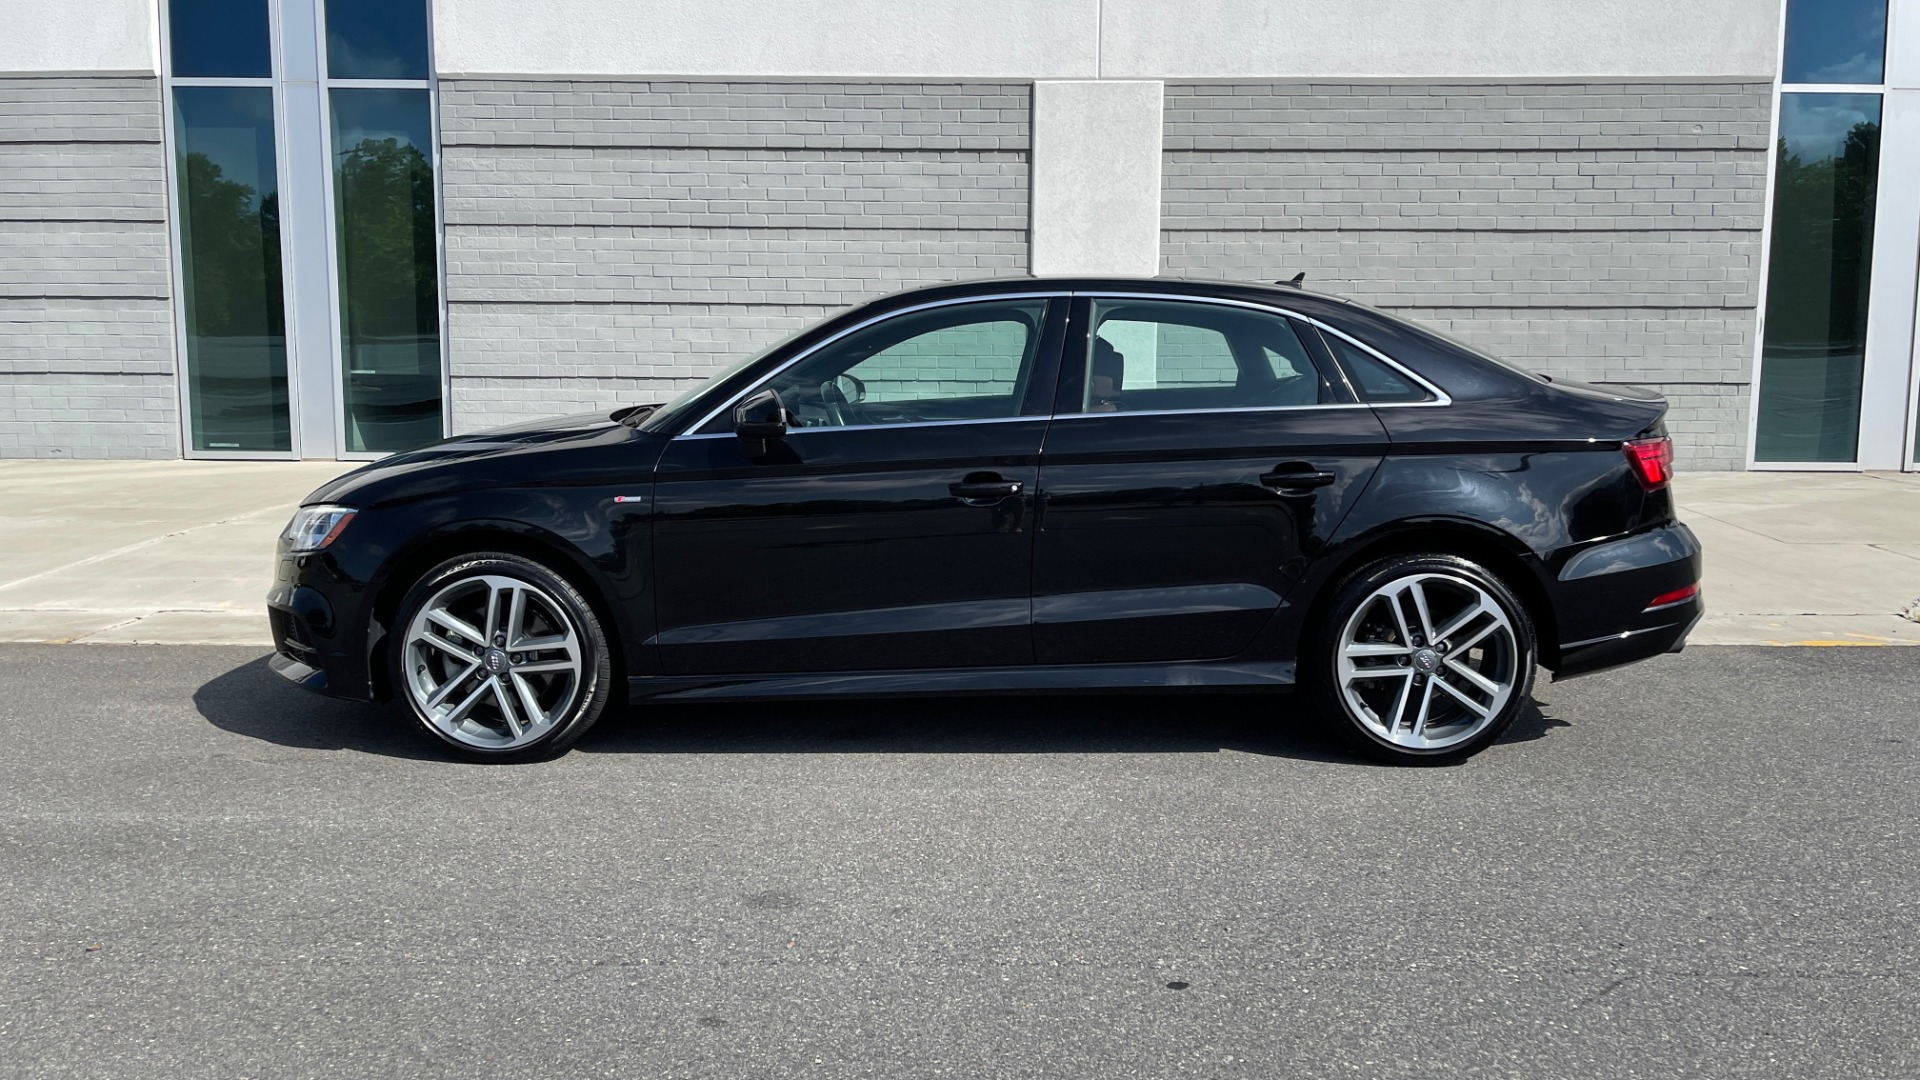 Used 2018 Audi A3 SEDAN PREMIUM PLUS / S-LINE / PANO-ROOF / PARK SYS / REARVIEW for sale $31,795 at Formula Imports in Charlotte NC 28227 4